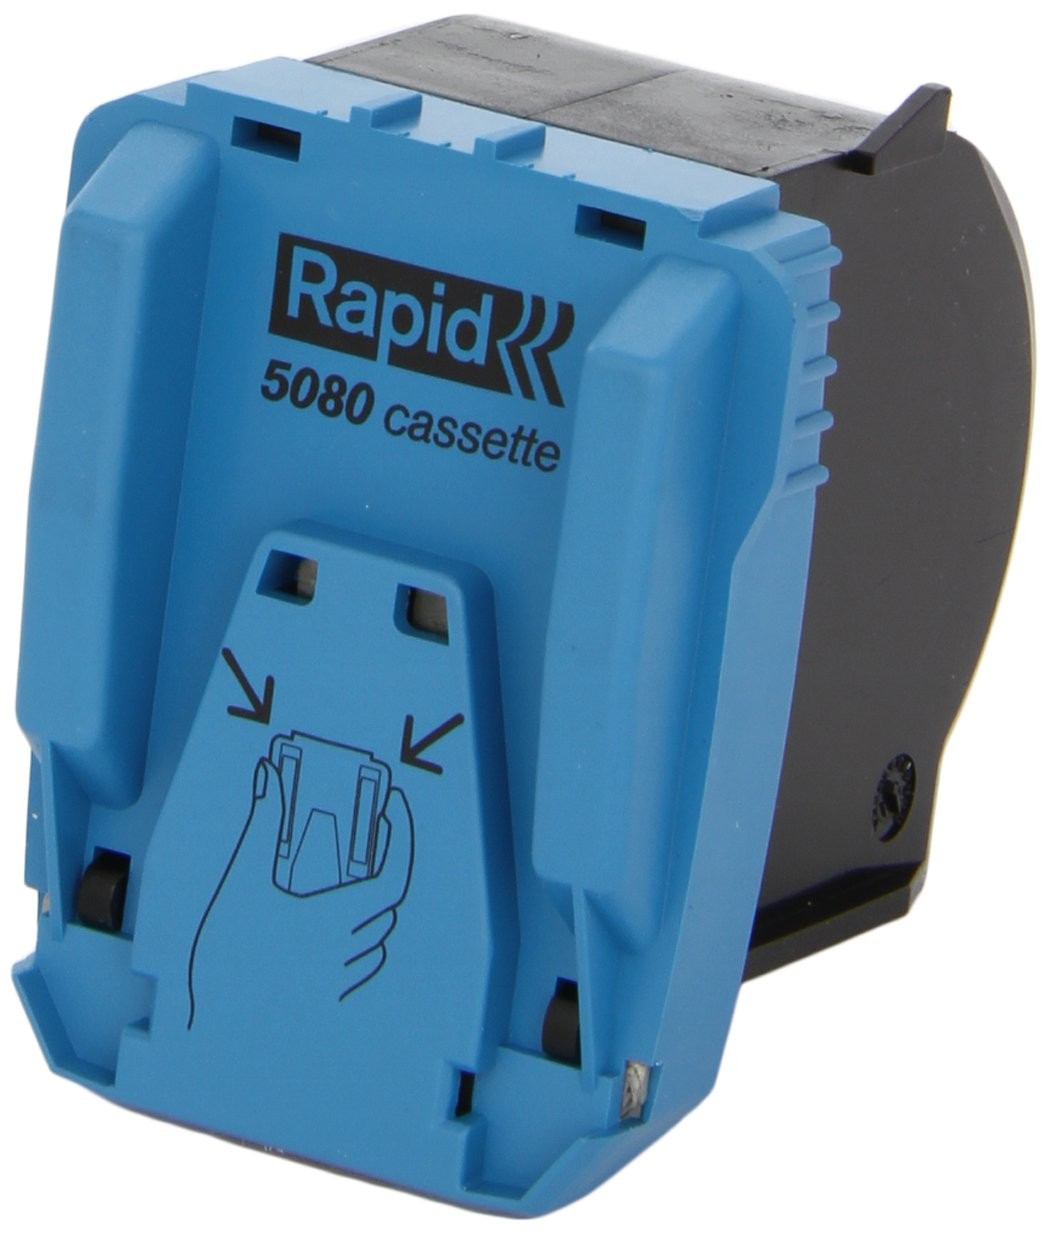 Rapid 5080 Staple Cassette Cartridge (5,000)